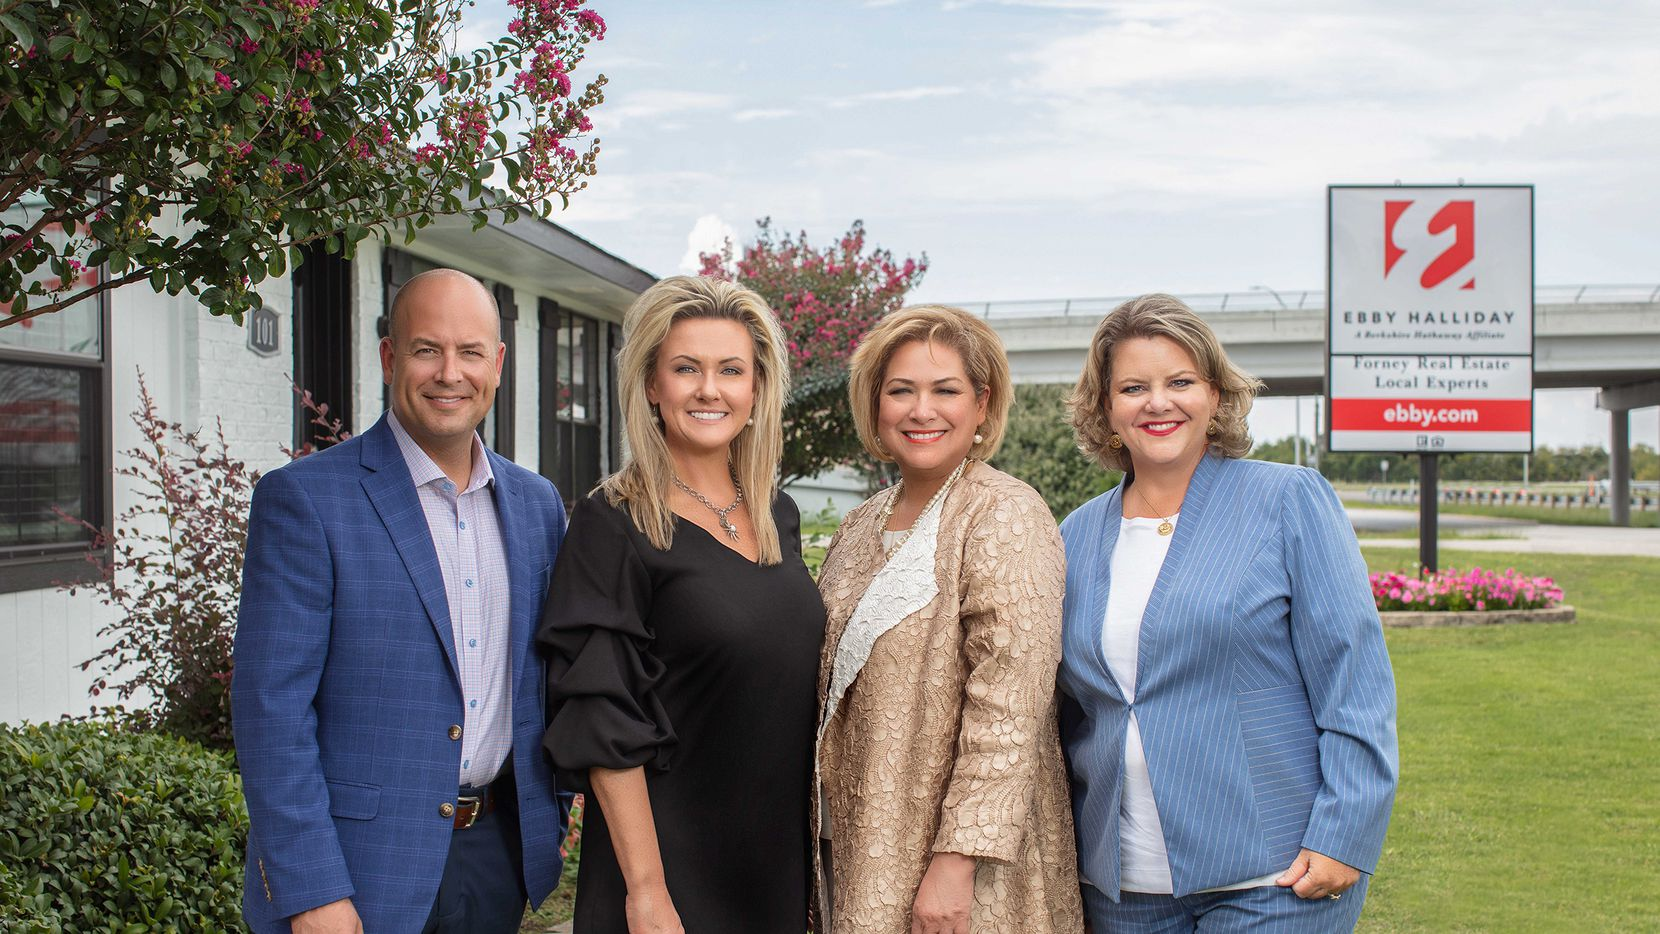 From left, president and CEO Chris Kelly, Forney co-sales leaders Natalie Jackson Thomas and Sylvia Sotelo Kidd and vice president of Brokerage Malinda Howell celebrate the opening of the new Forney office.